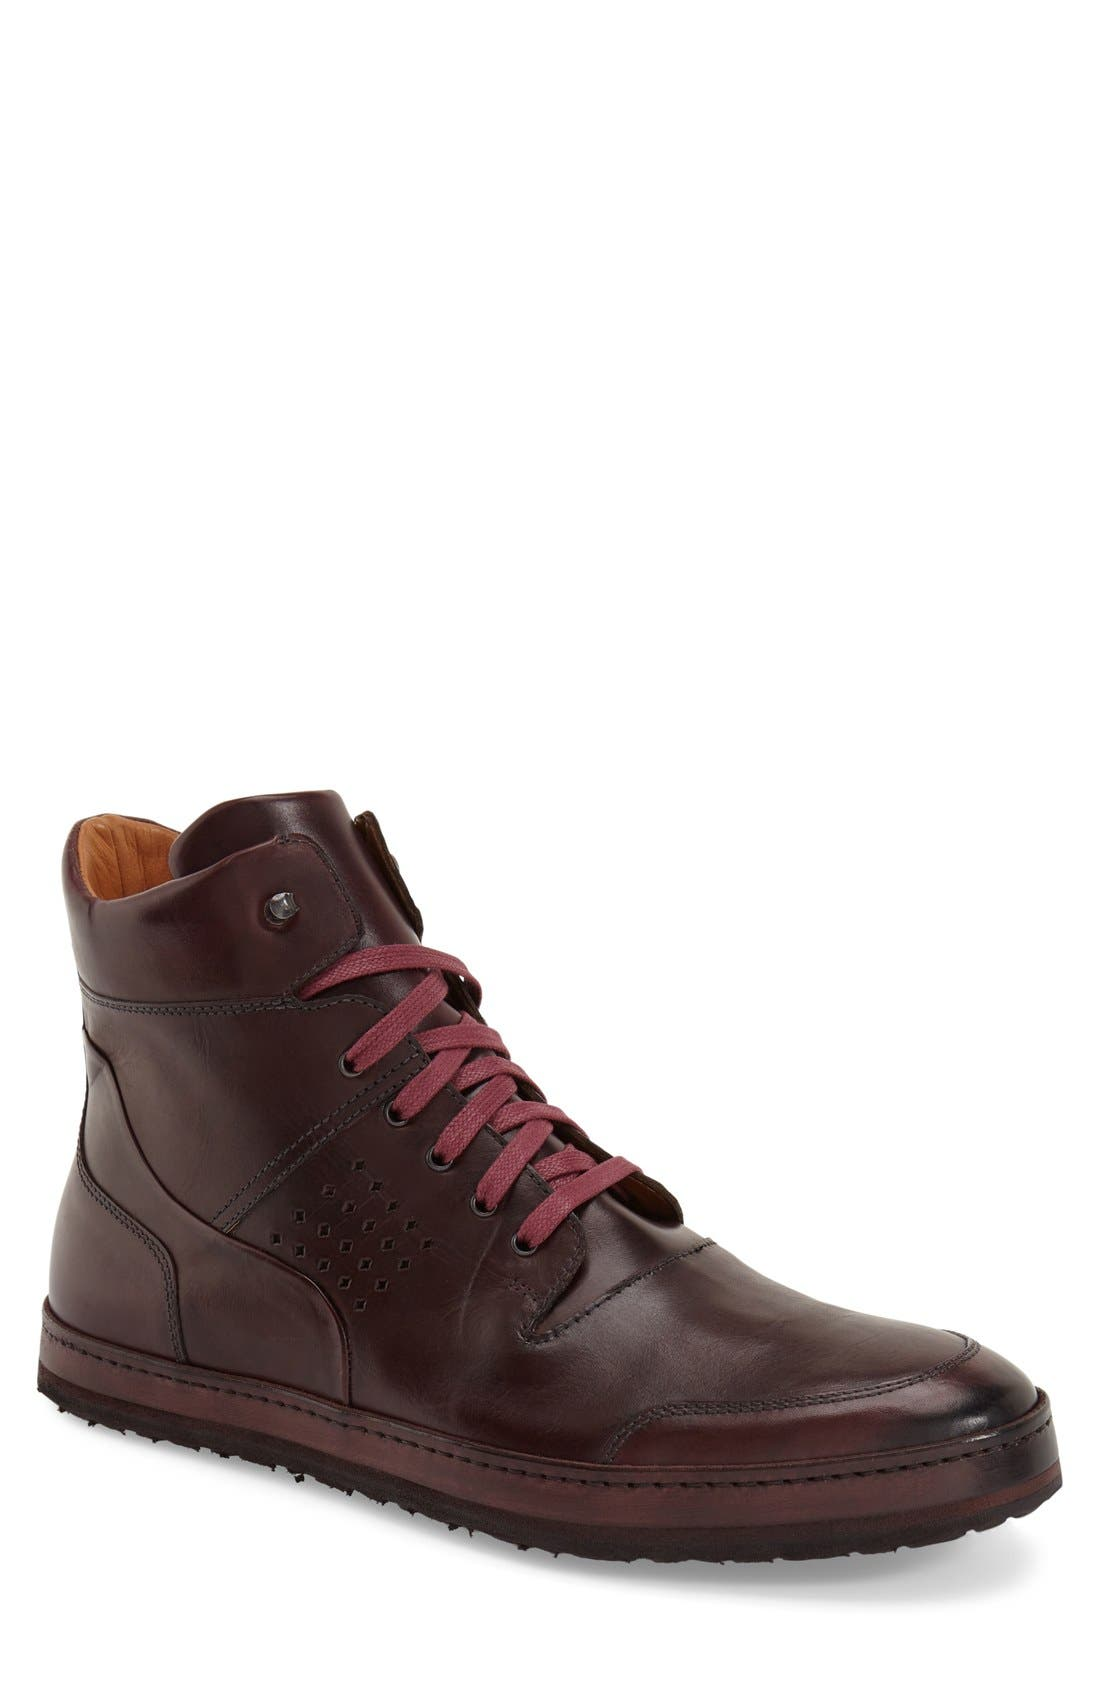 MEZLAN 'Bolzano' High Top Sneaker